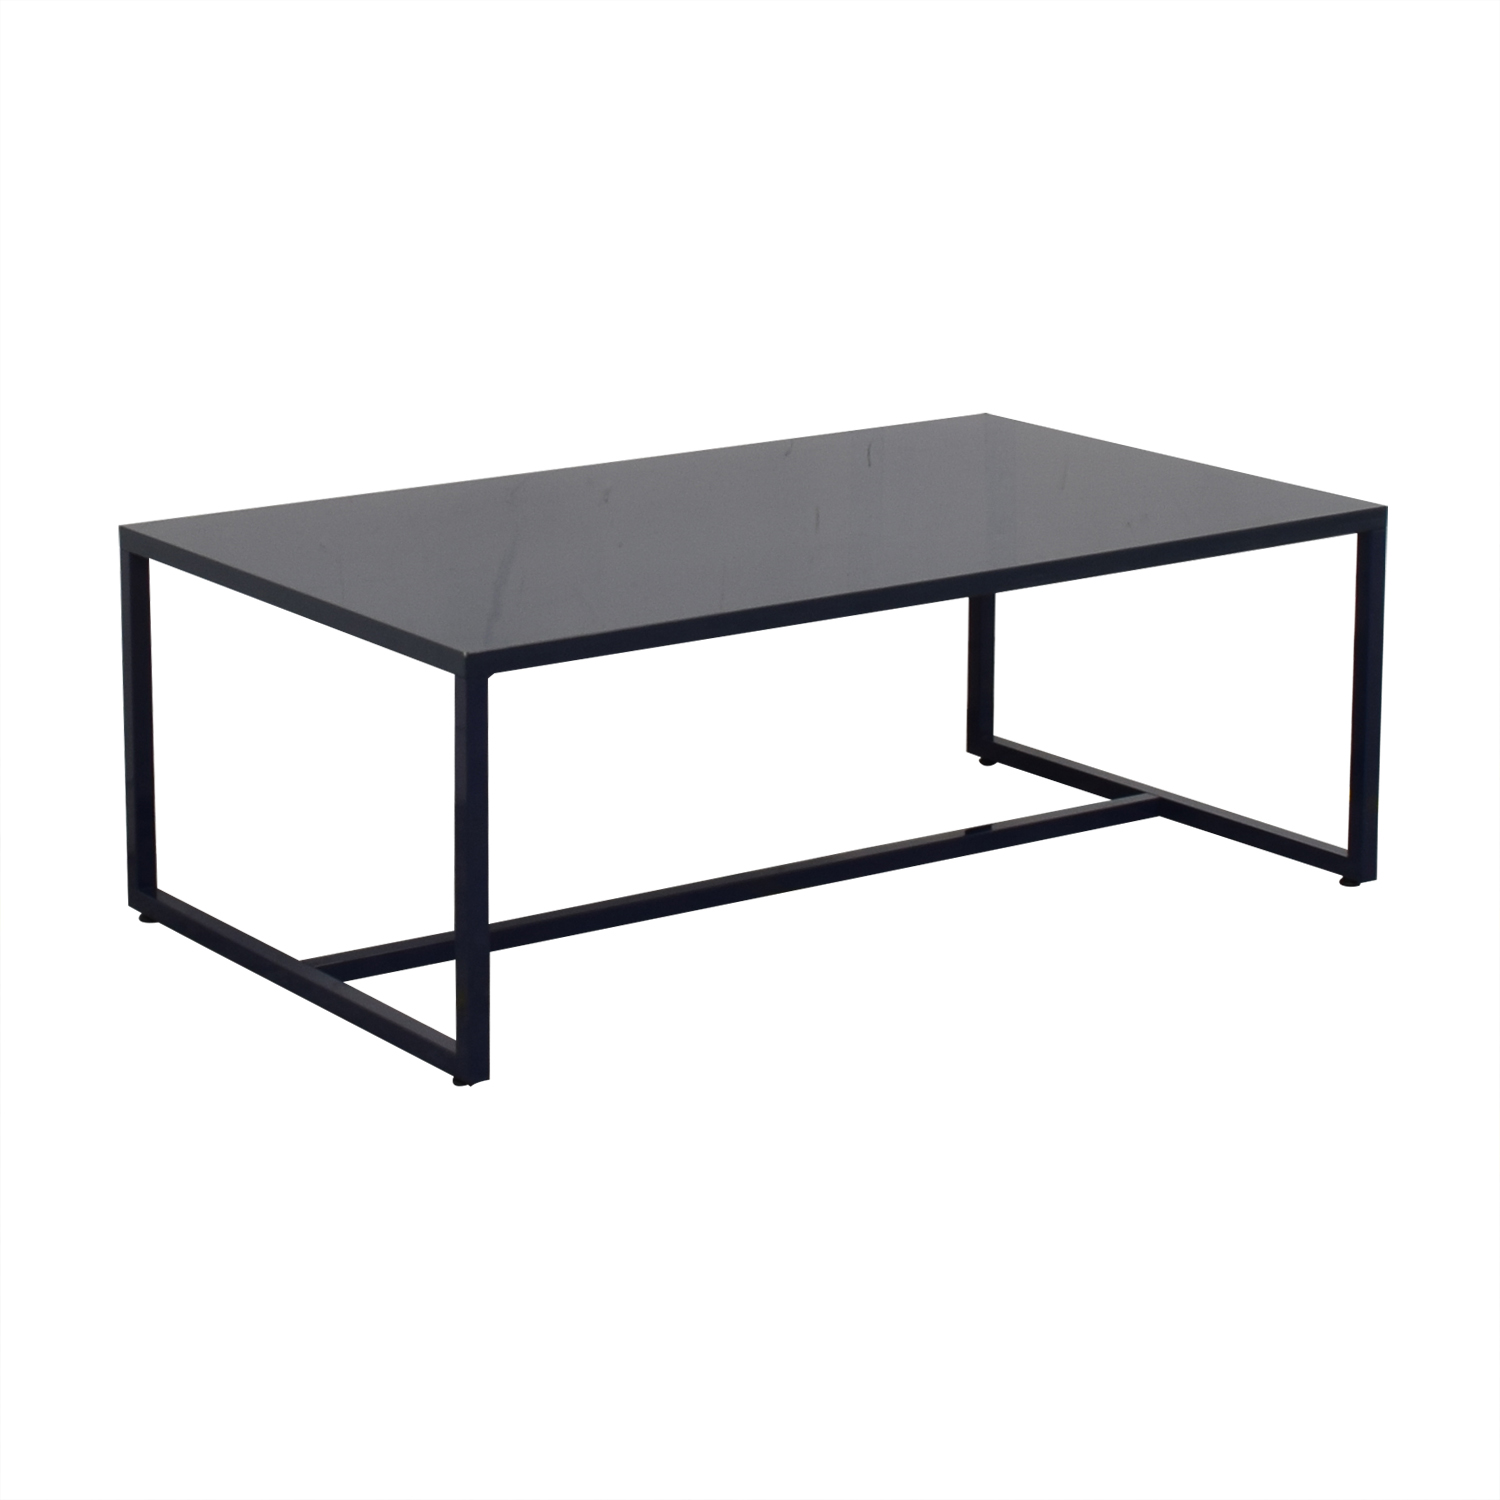 Crate & Barrel Crate & Barrel Frame Coffee Table nj